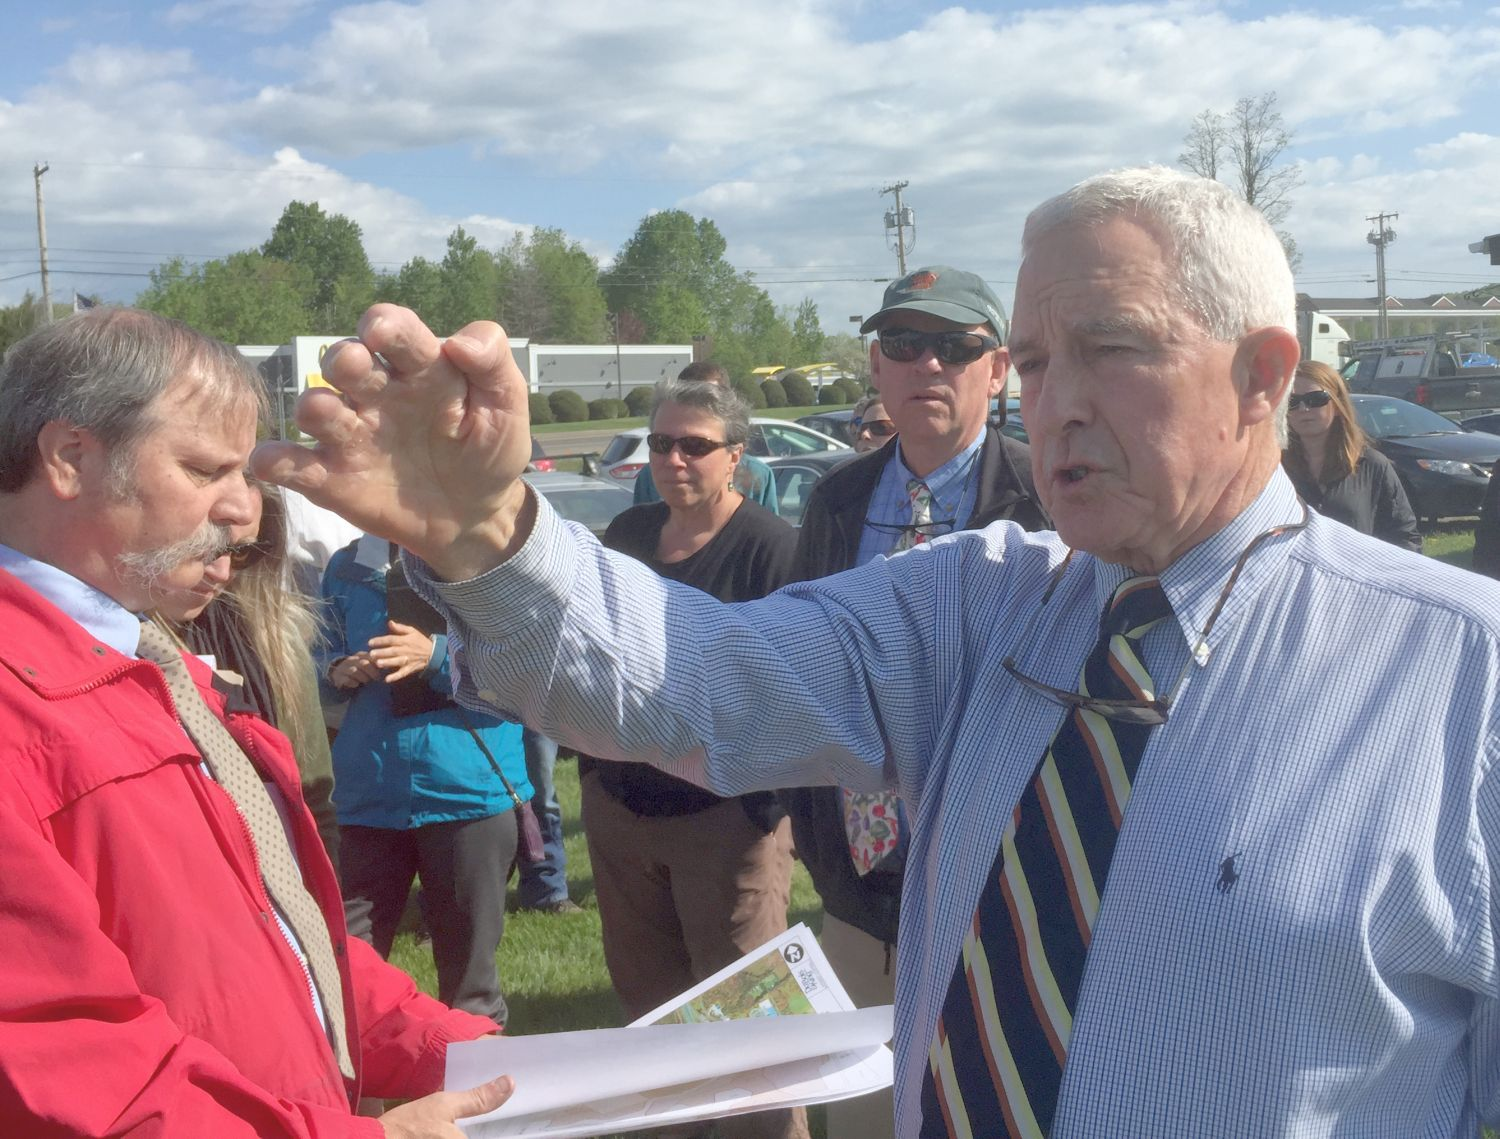 Development Off Exit 4 Seen As A Test Of Farmland Preservation